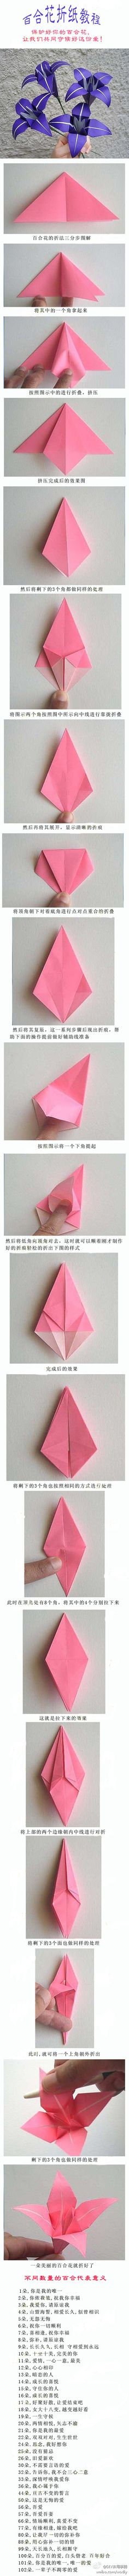 12 Best Origami Images On Pinterest Paper Engineering How